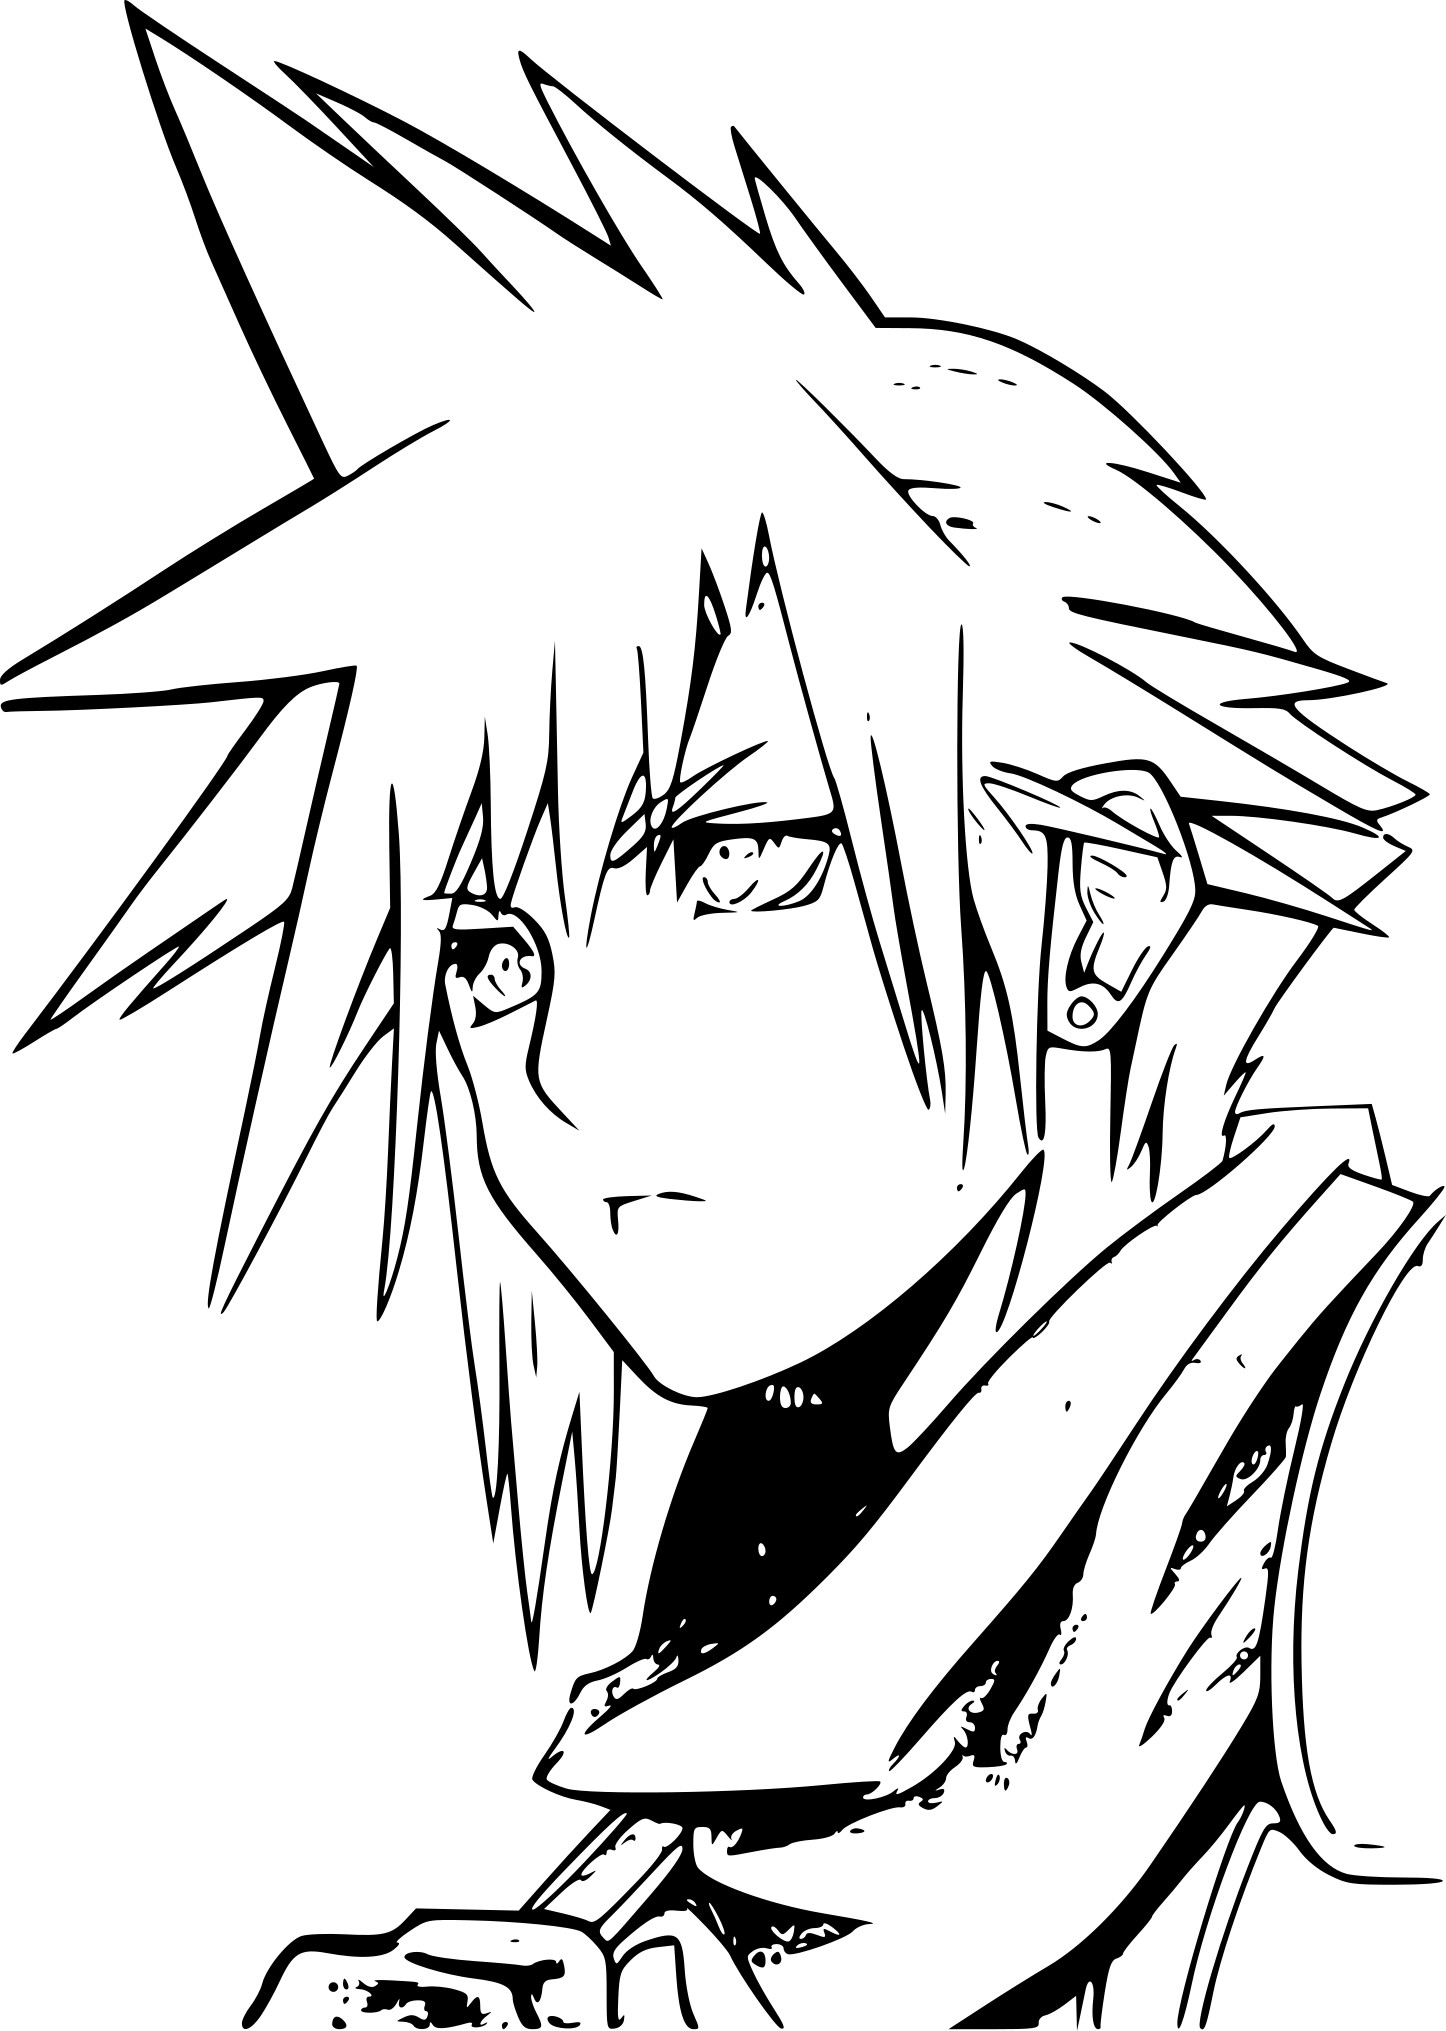 cloud final fantasy seven coloring pages | Coloriage de Final Fantasy 7 à imprimer sur Coloriage DE .com